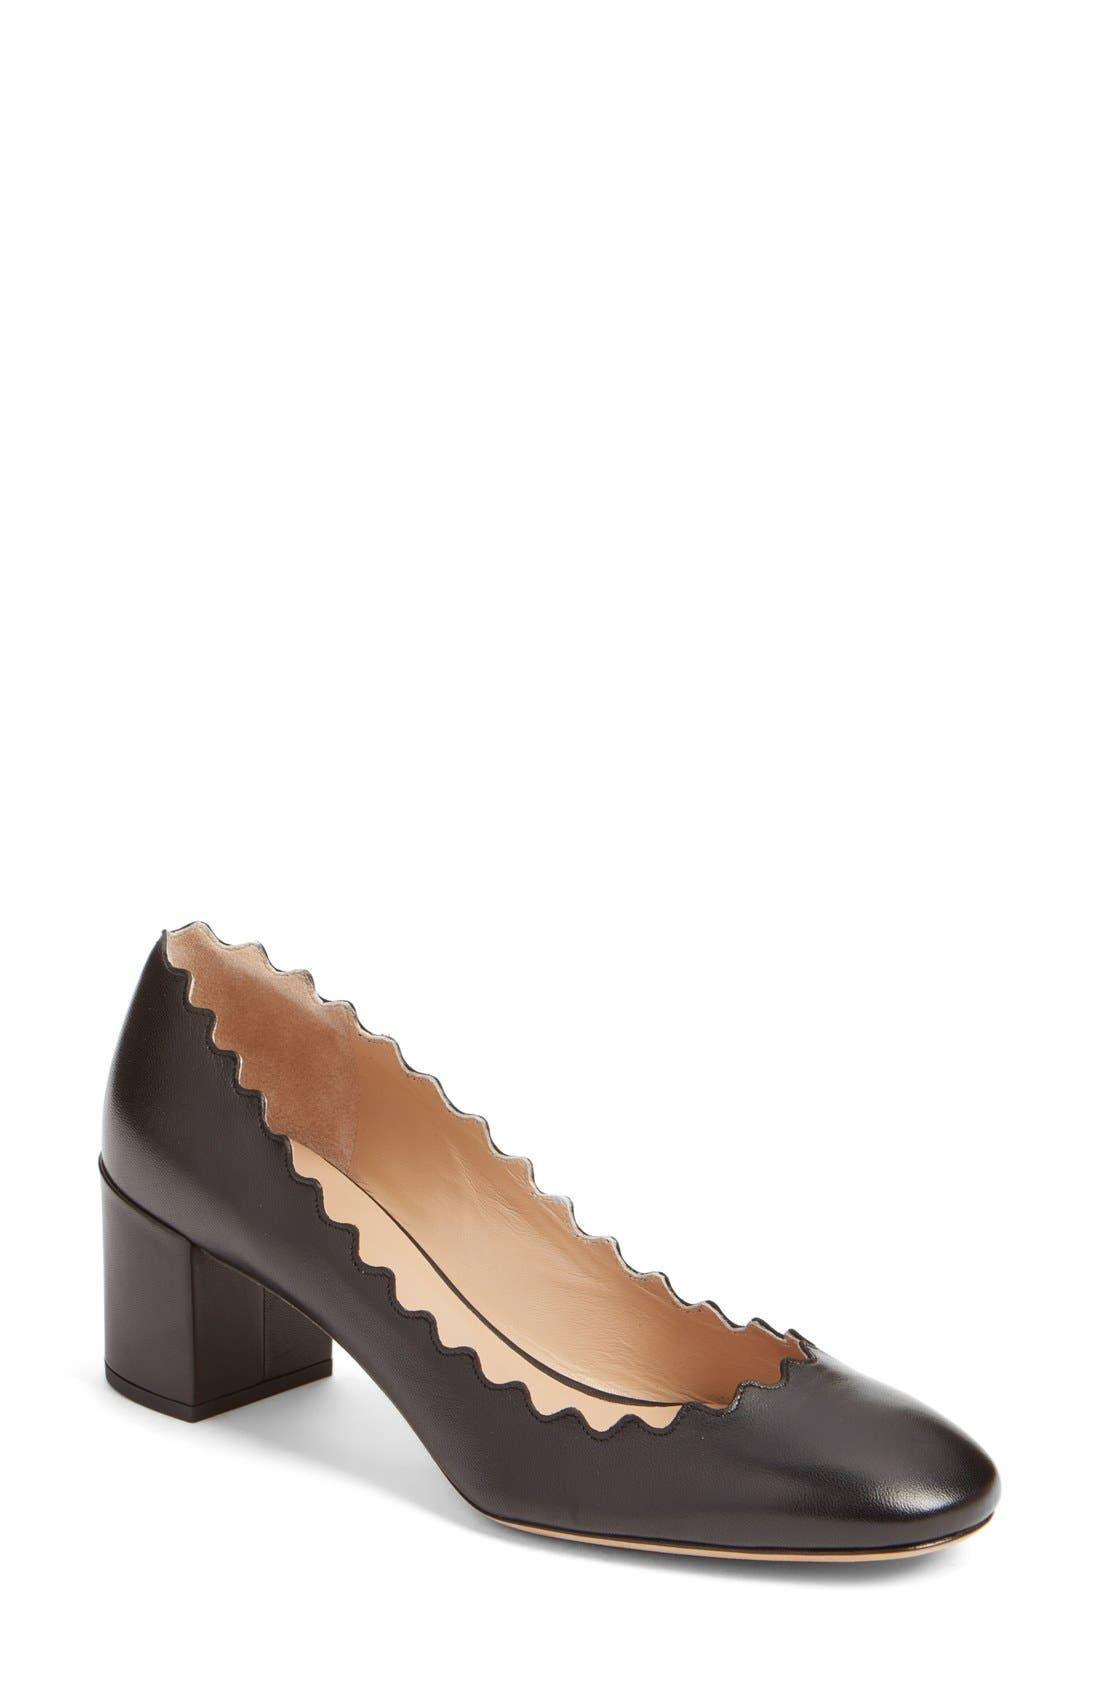 Chloe Lauren Scalloped Pump - Black